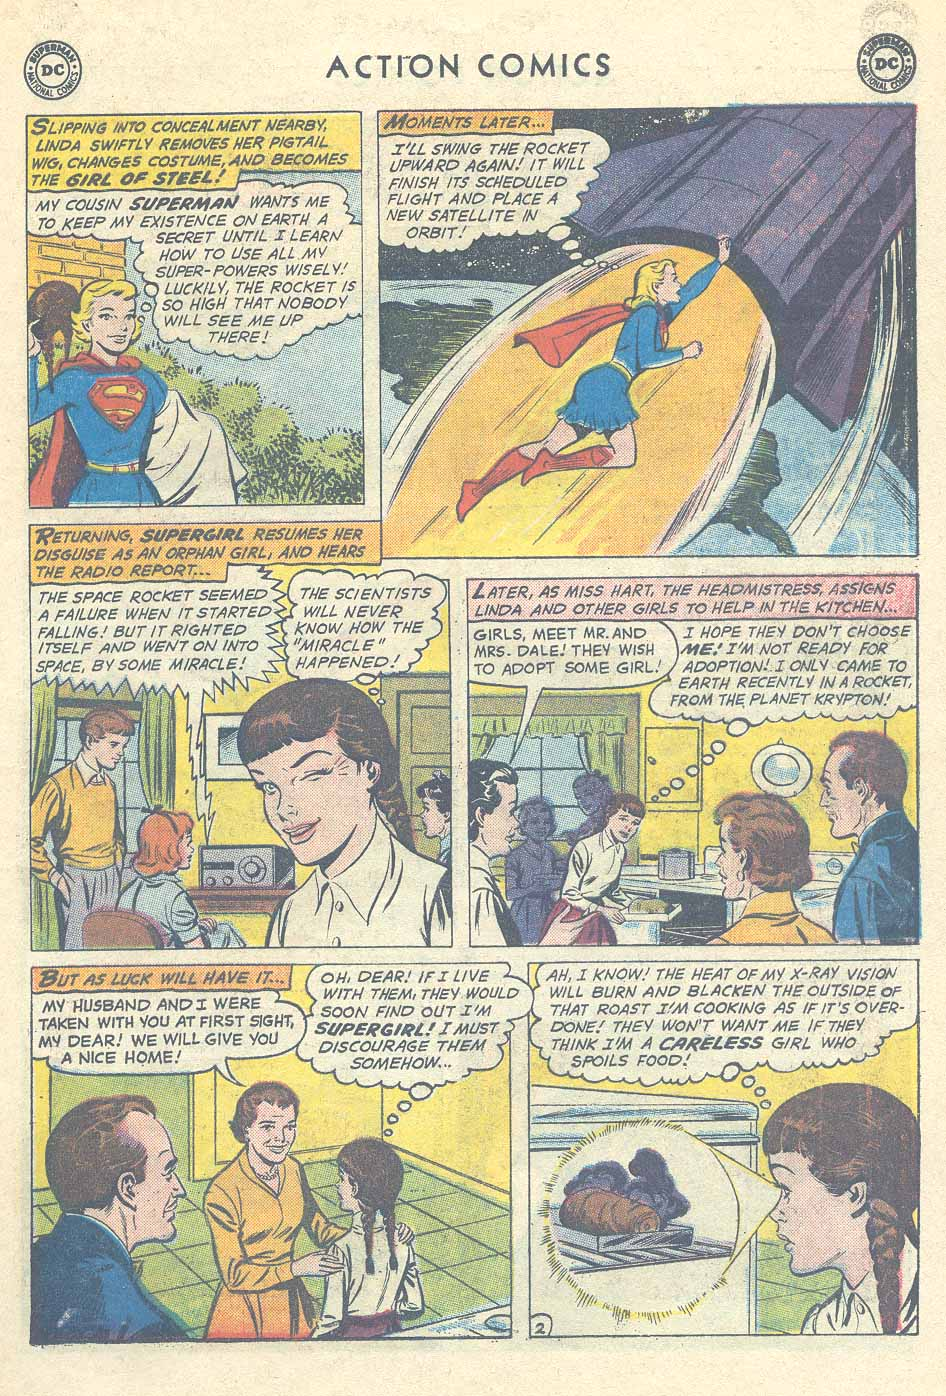 Action Comics (1938) 254 Page 26